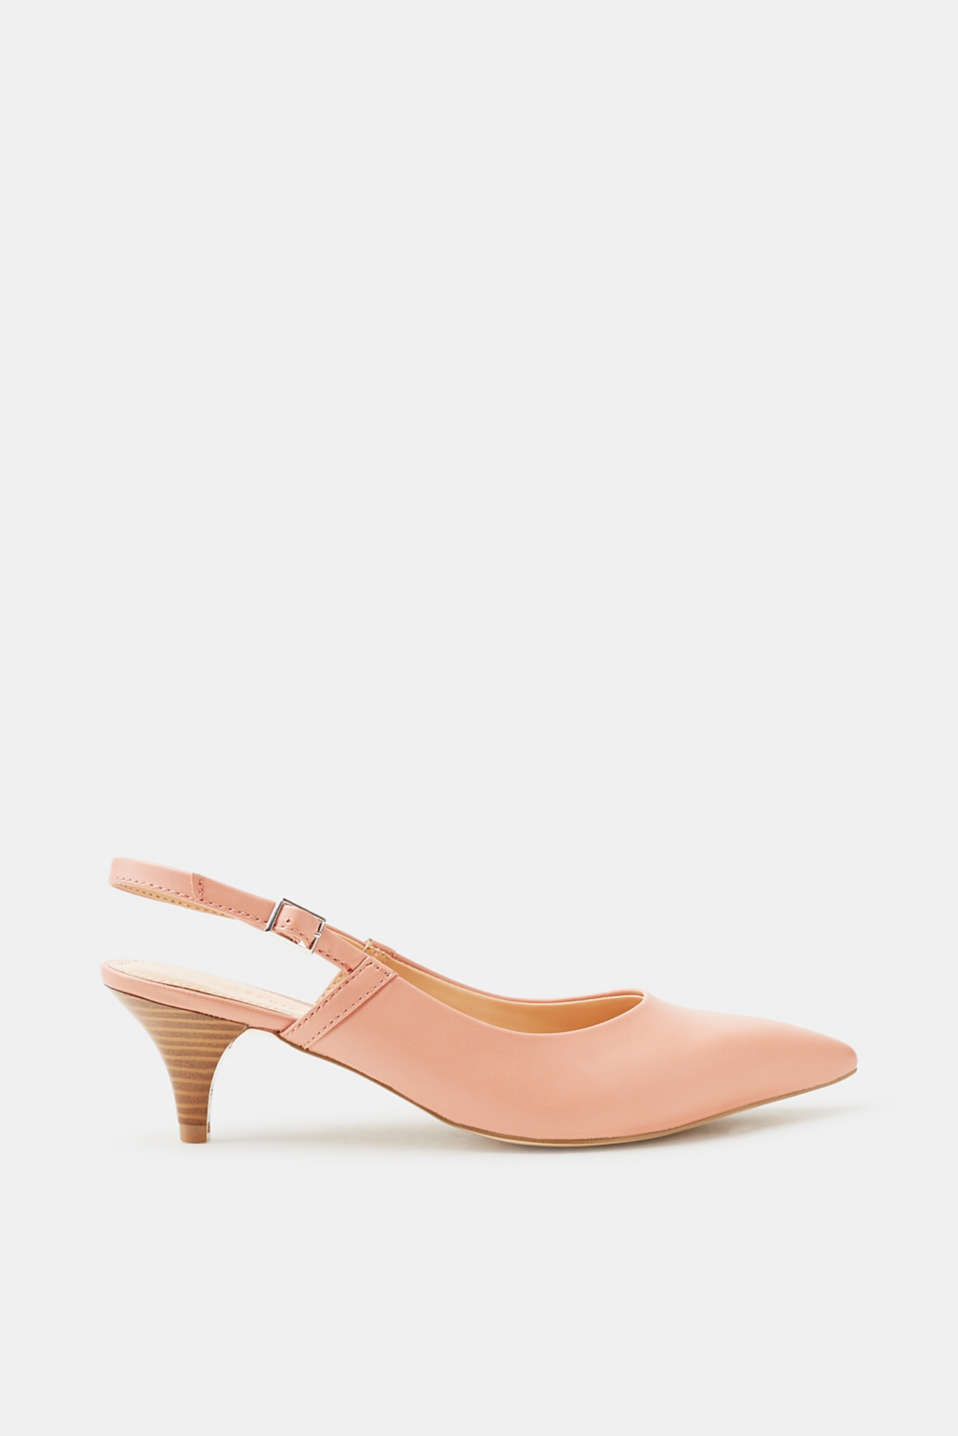 Esprit Slingback-Pumps in glatter Leder-Optik für Damen, Größe 41, Blush